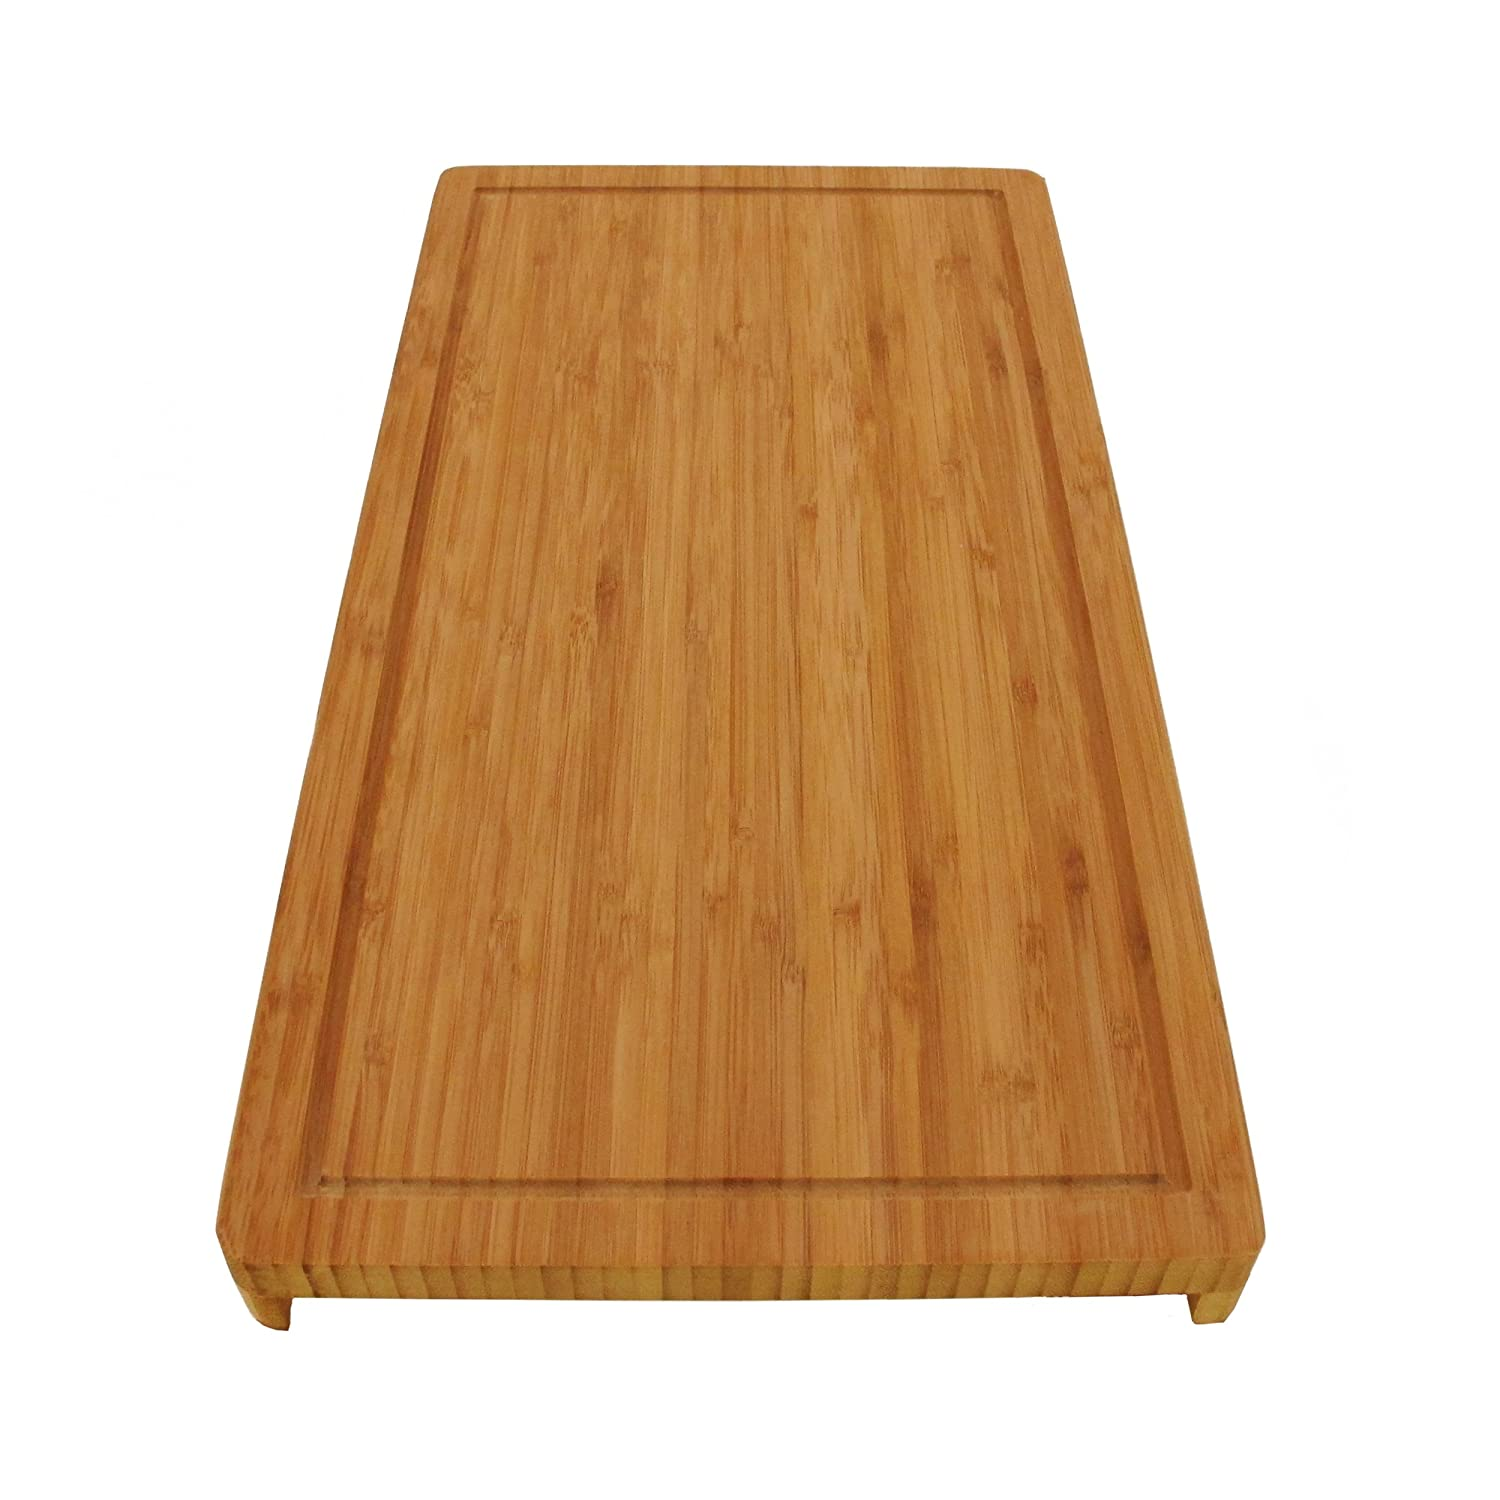 "BambooMN Brand Bamboo Griddle Cover/Cutting Board for Viking Cooktops, Vertical Cut with Raised Design, Small (10.25""x19.8""x1.50"")"